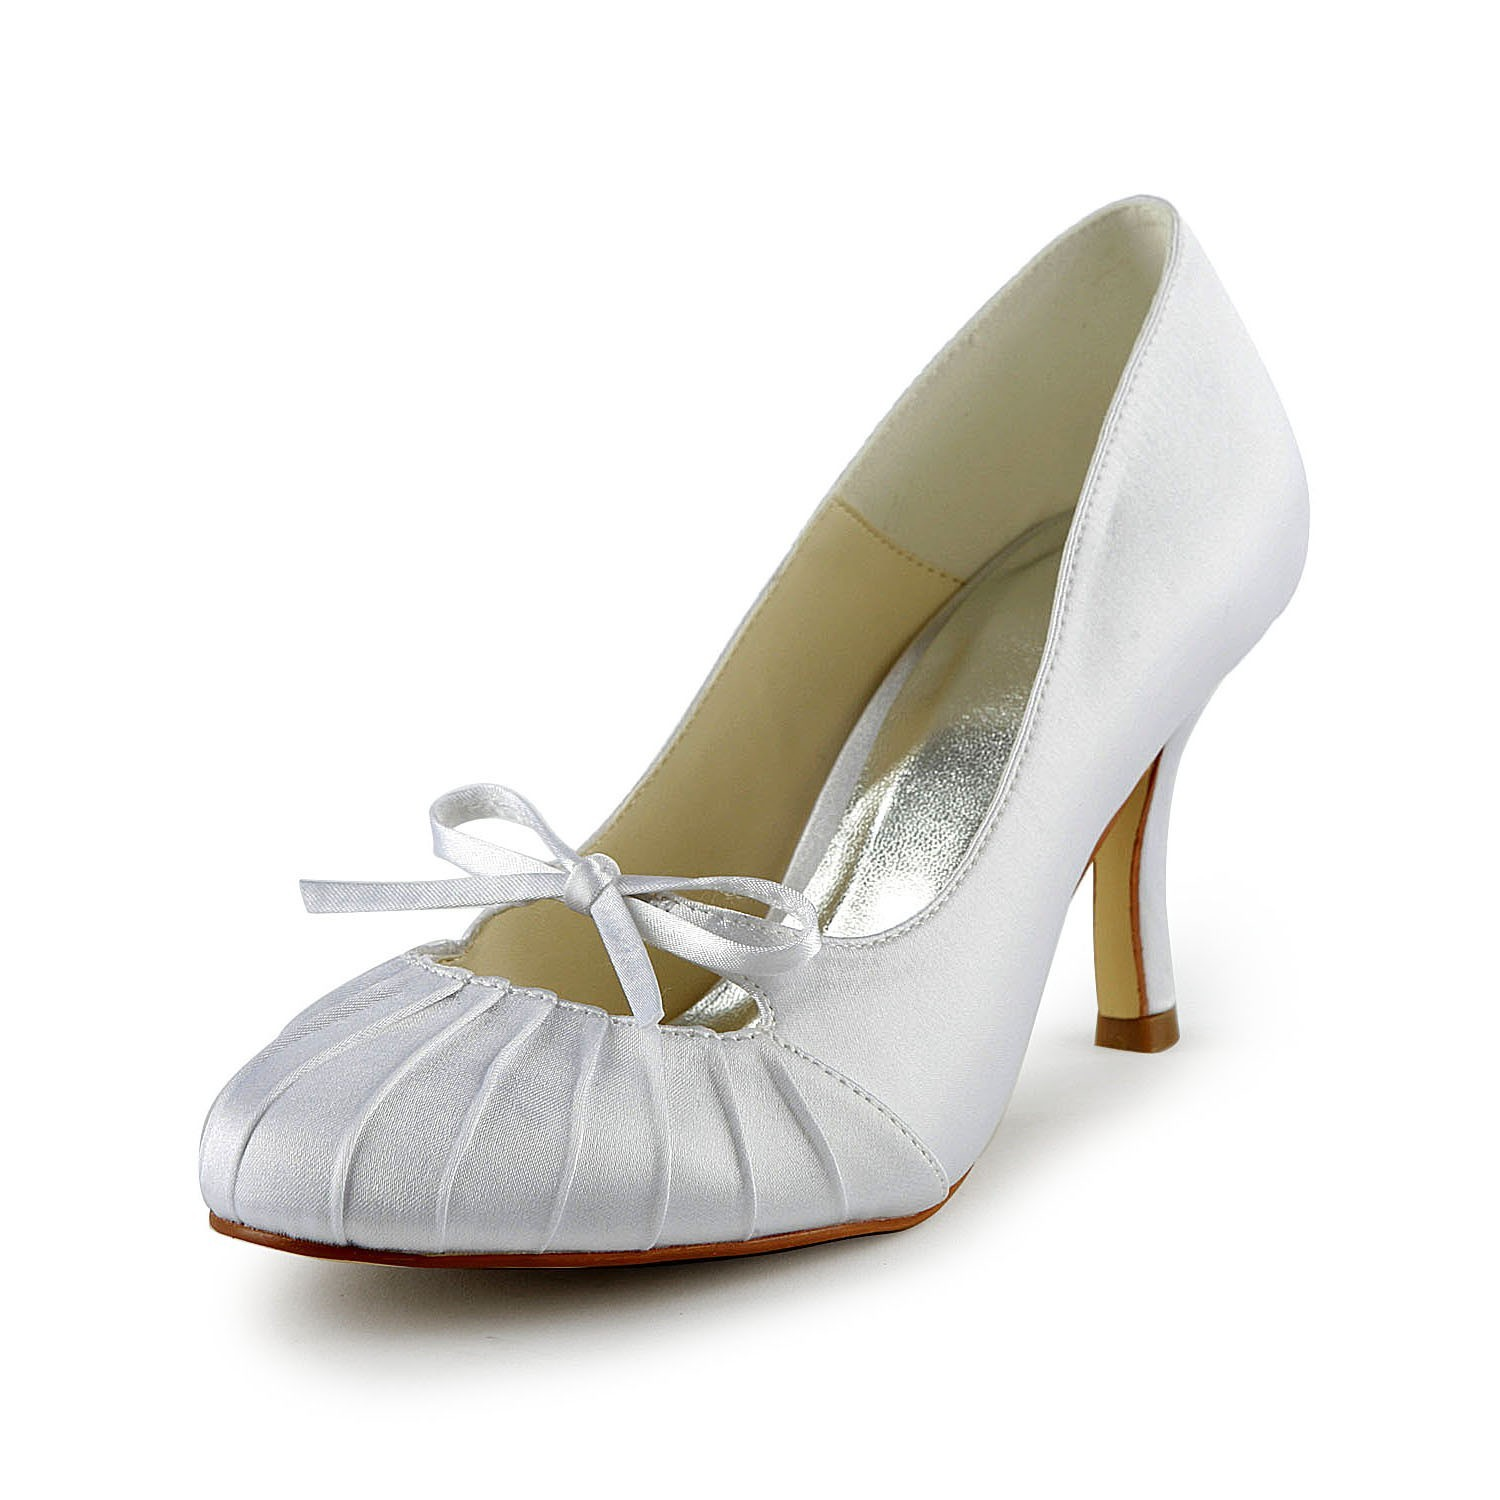 18750b9546d Latest Women s Satin Stiletto Heel Closed Toe Pumps White Wedding Shoes  With Bowknot Ruched